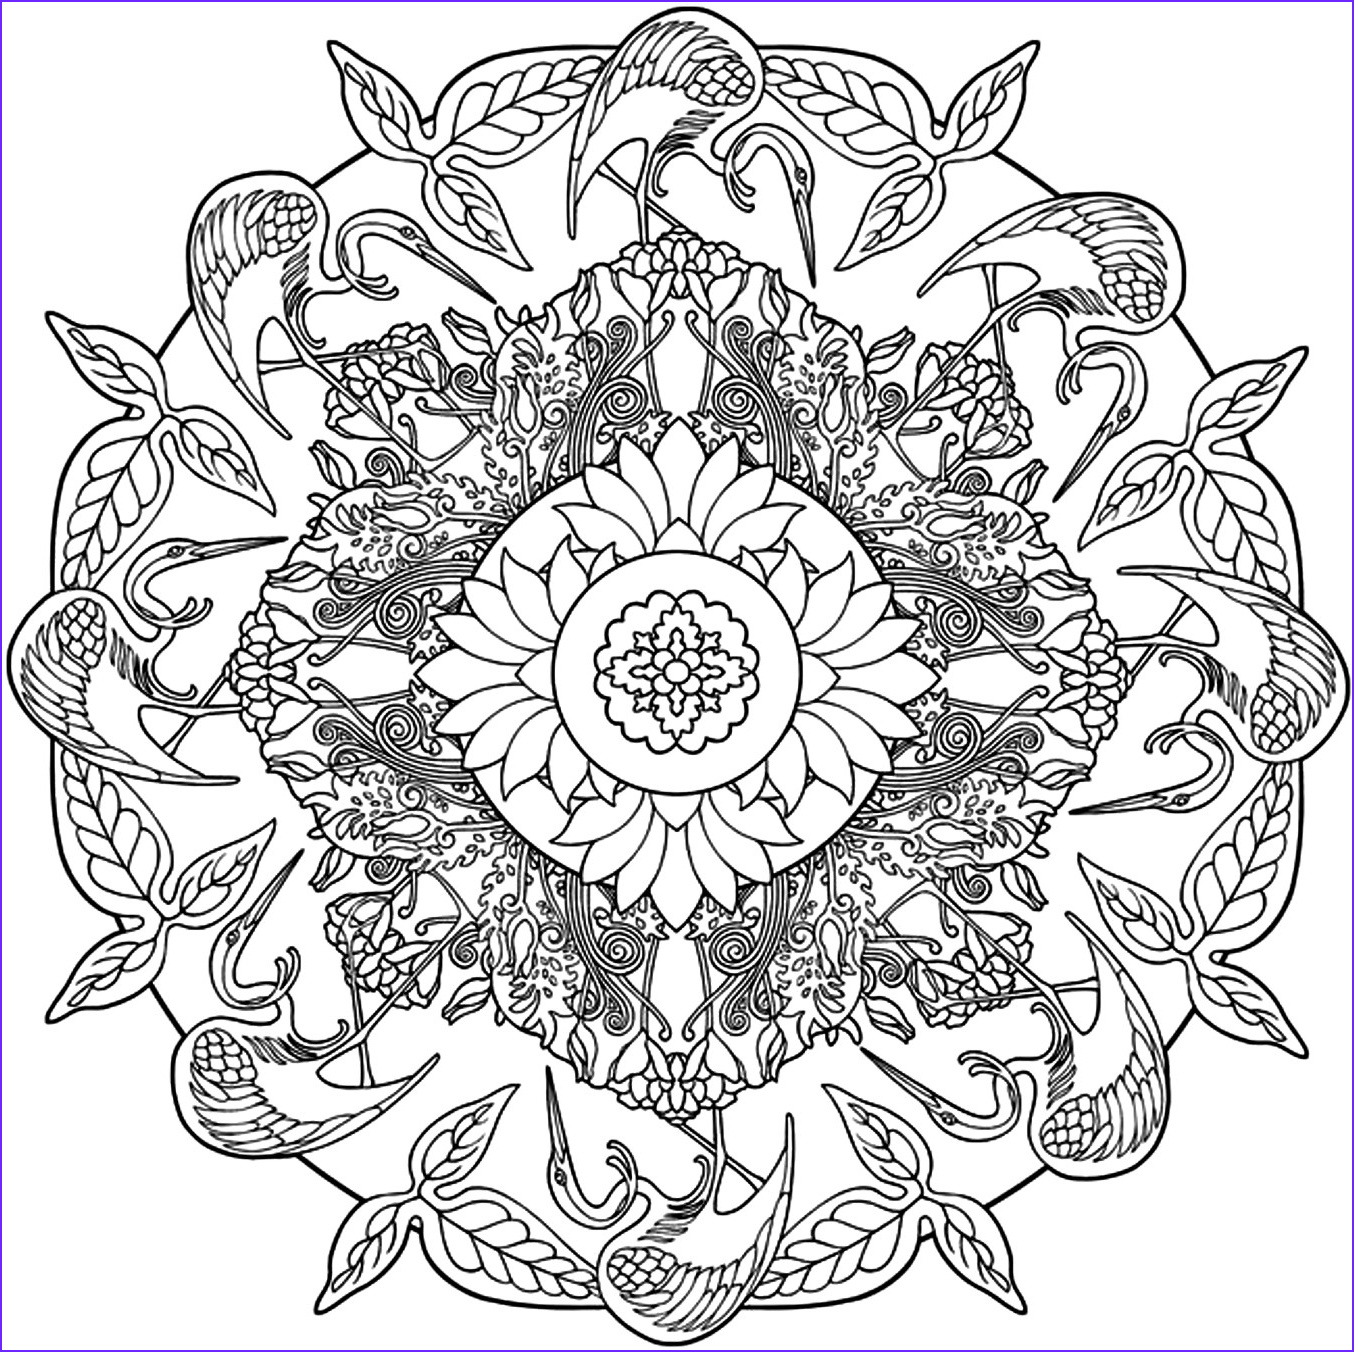 Nature Coloring Pages for Adults Beautiful Photos Free Printable Adult Coloring Pages